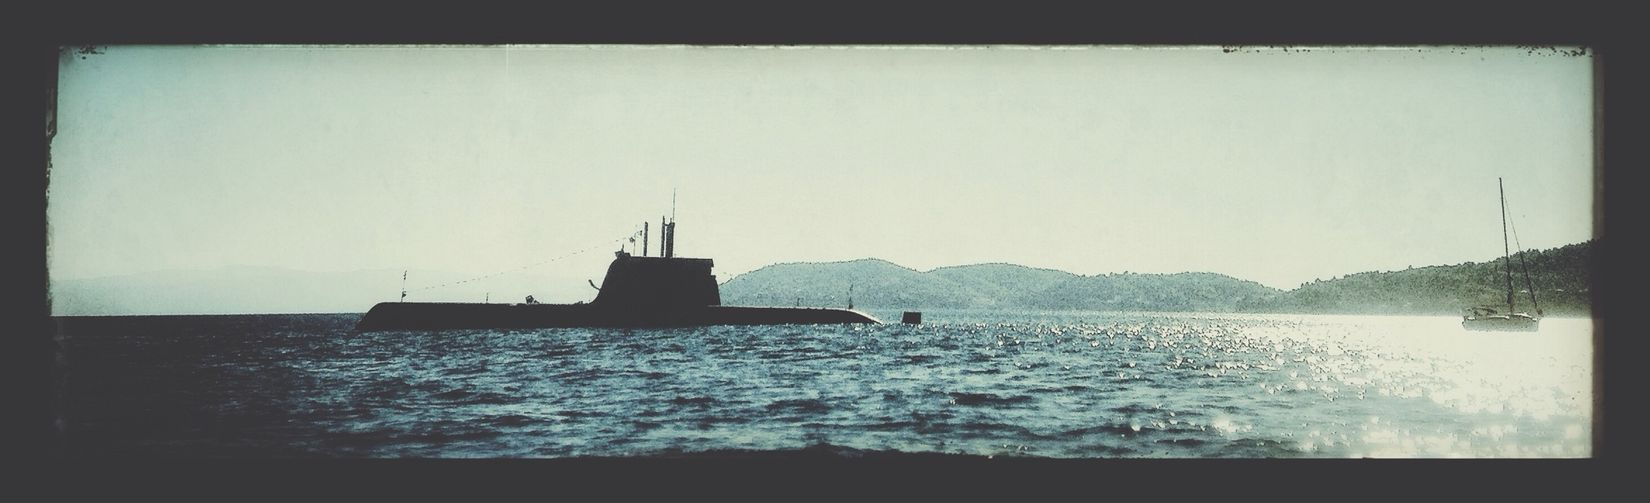 just a Submarine Popping Out for some Air !!